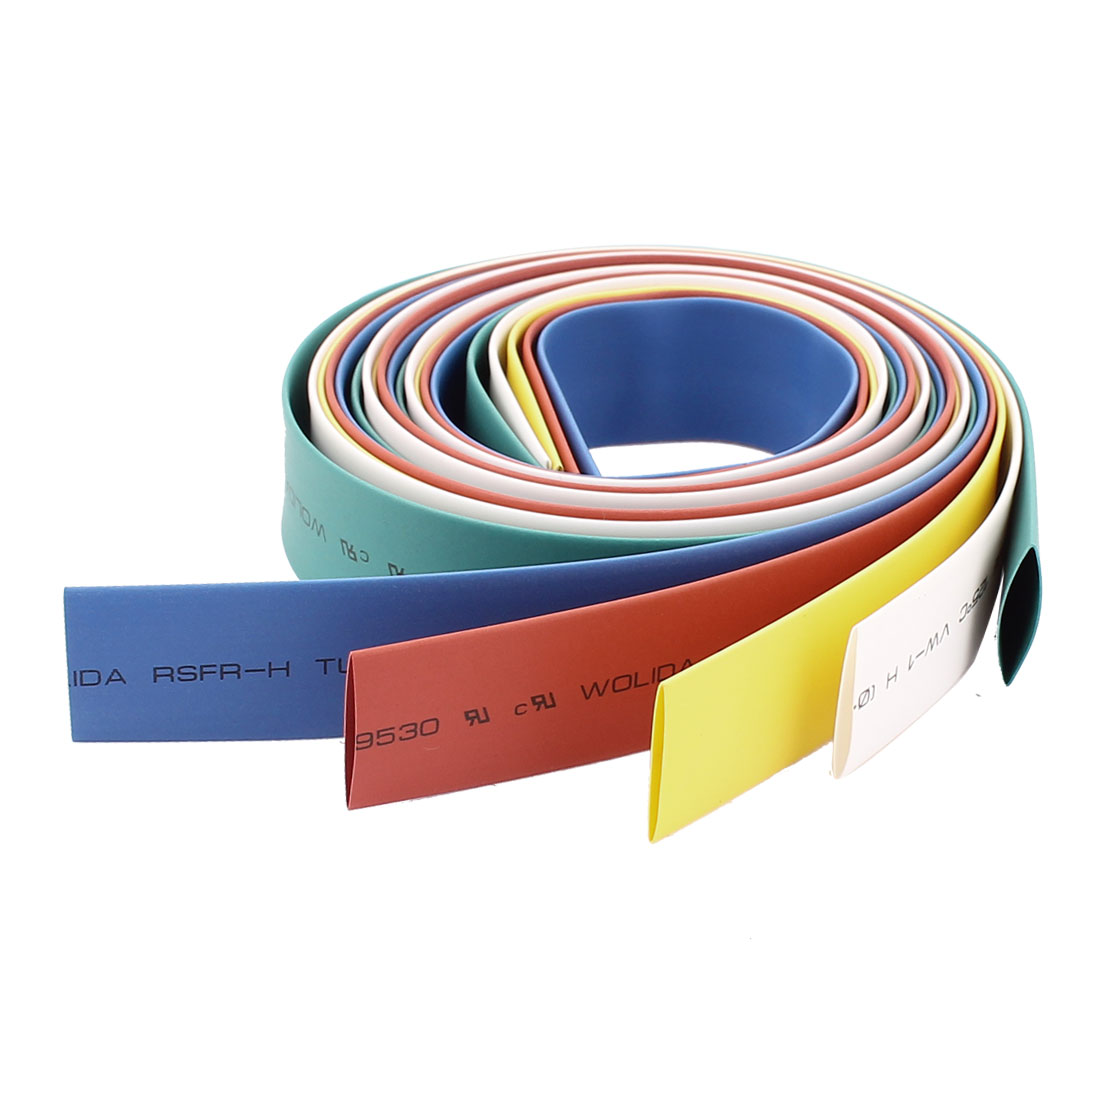 14mm Polyolefin Heat Shrink Tubing Shringking Tube Multi Color 5pcs